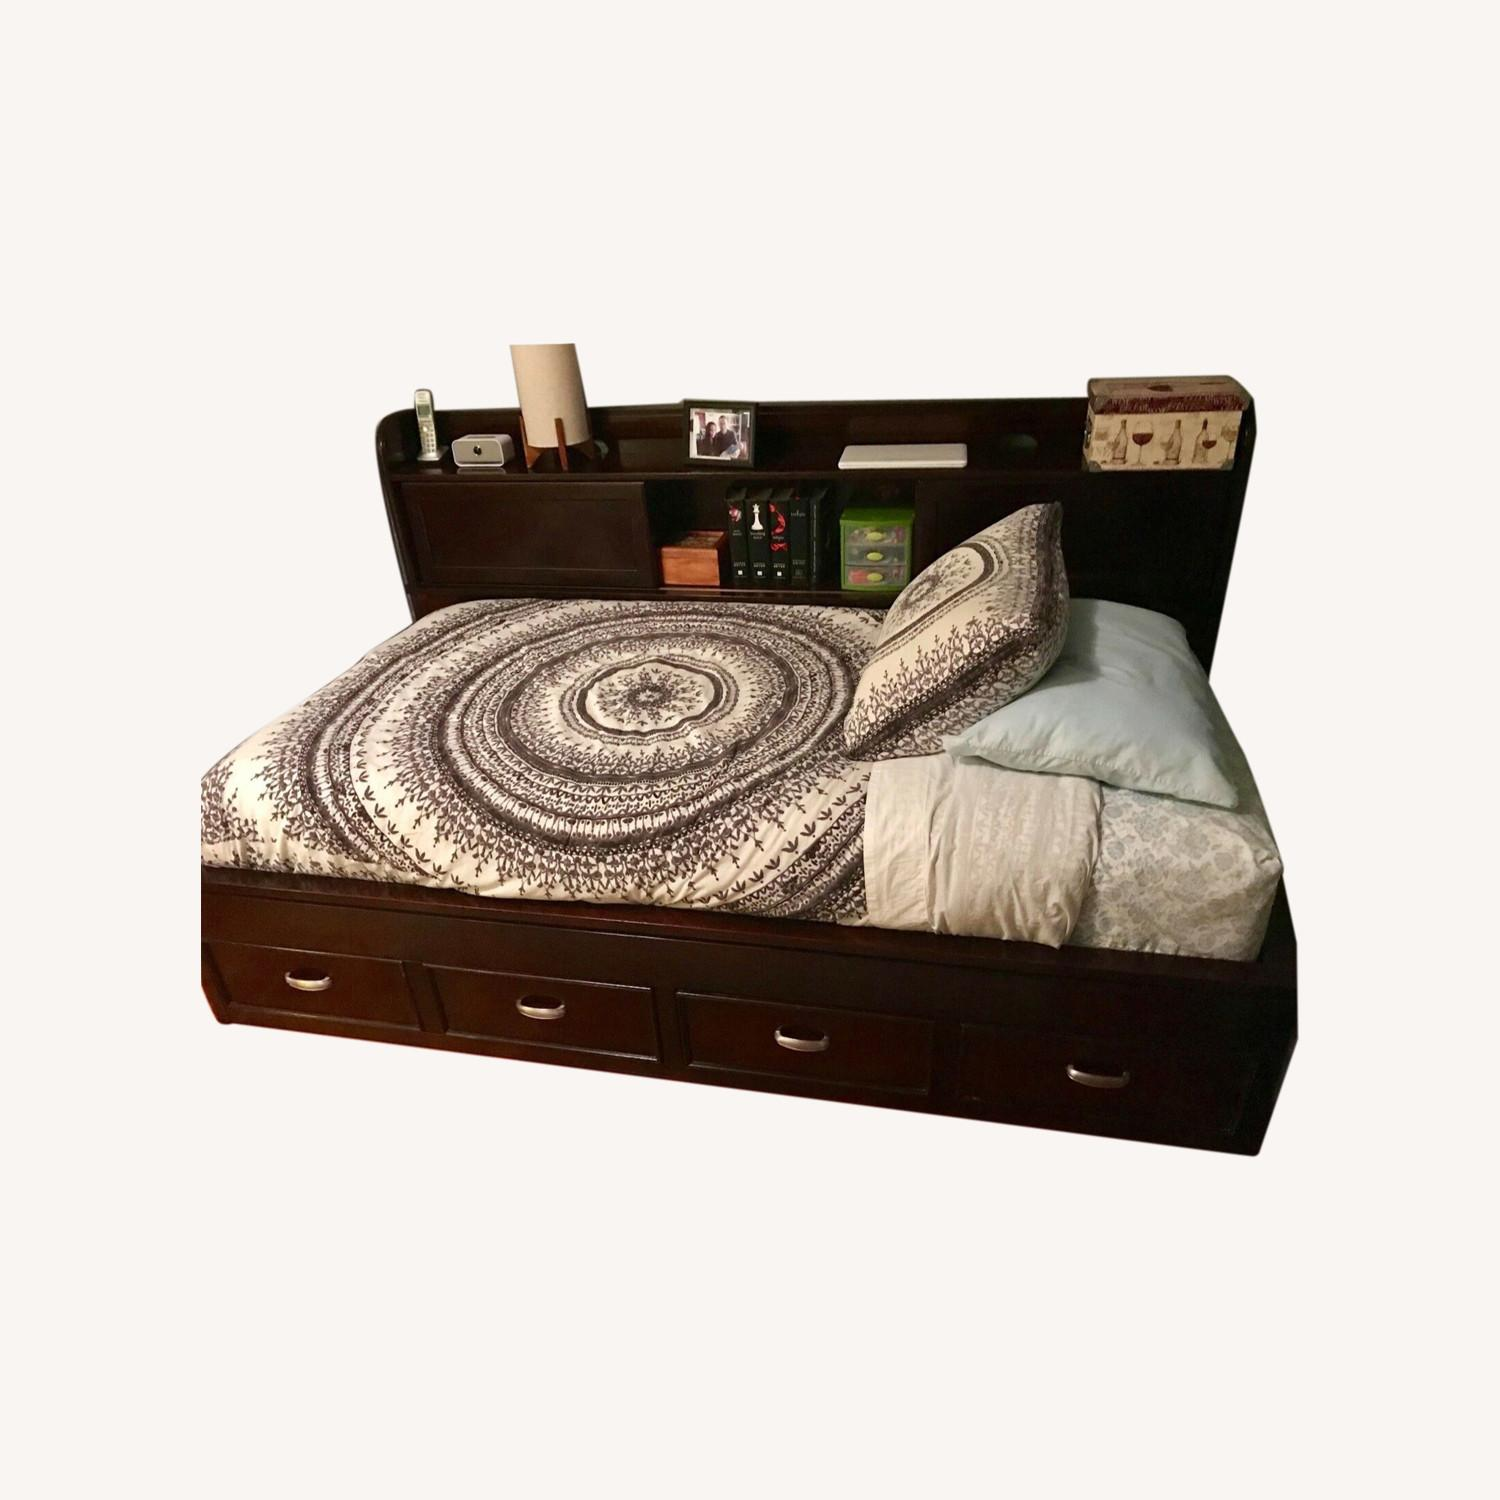 Raymour & Flanigan Twin Bed with Storage - image-0